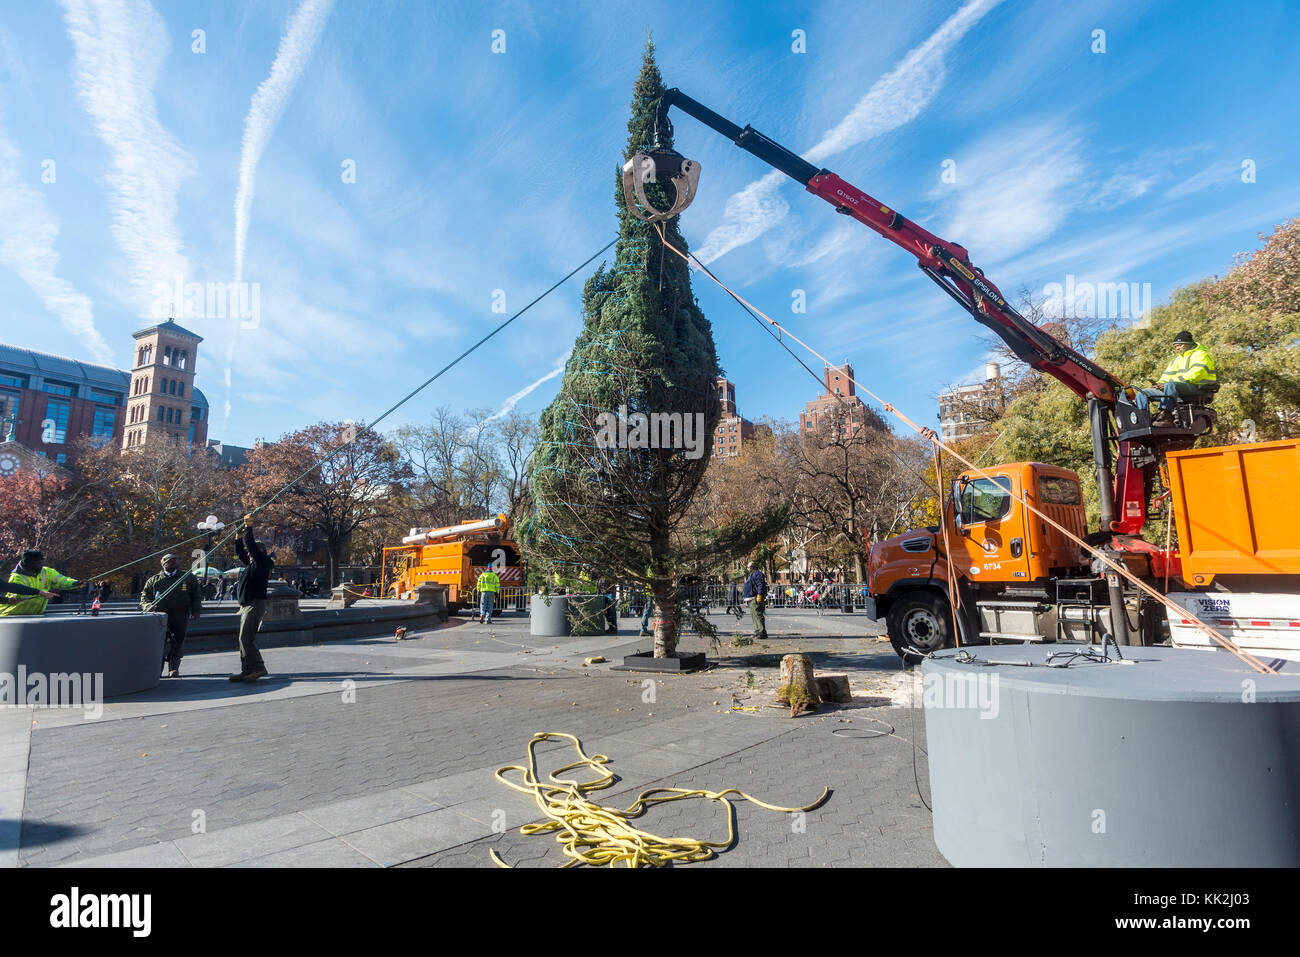 New York, USA. 27th November, 2017. The Annual Christmas tree arrived in Washington Square Park Monday morning. Stock Photo